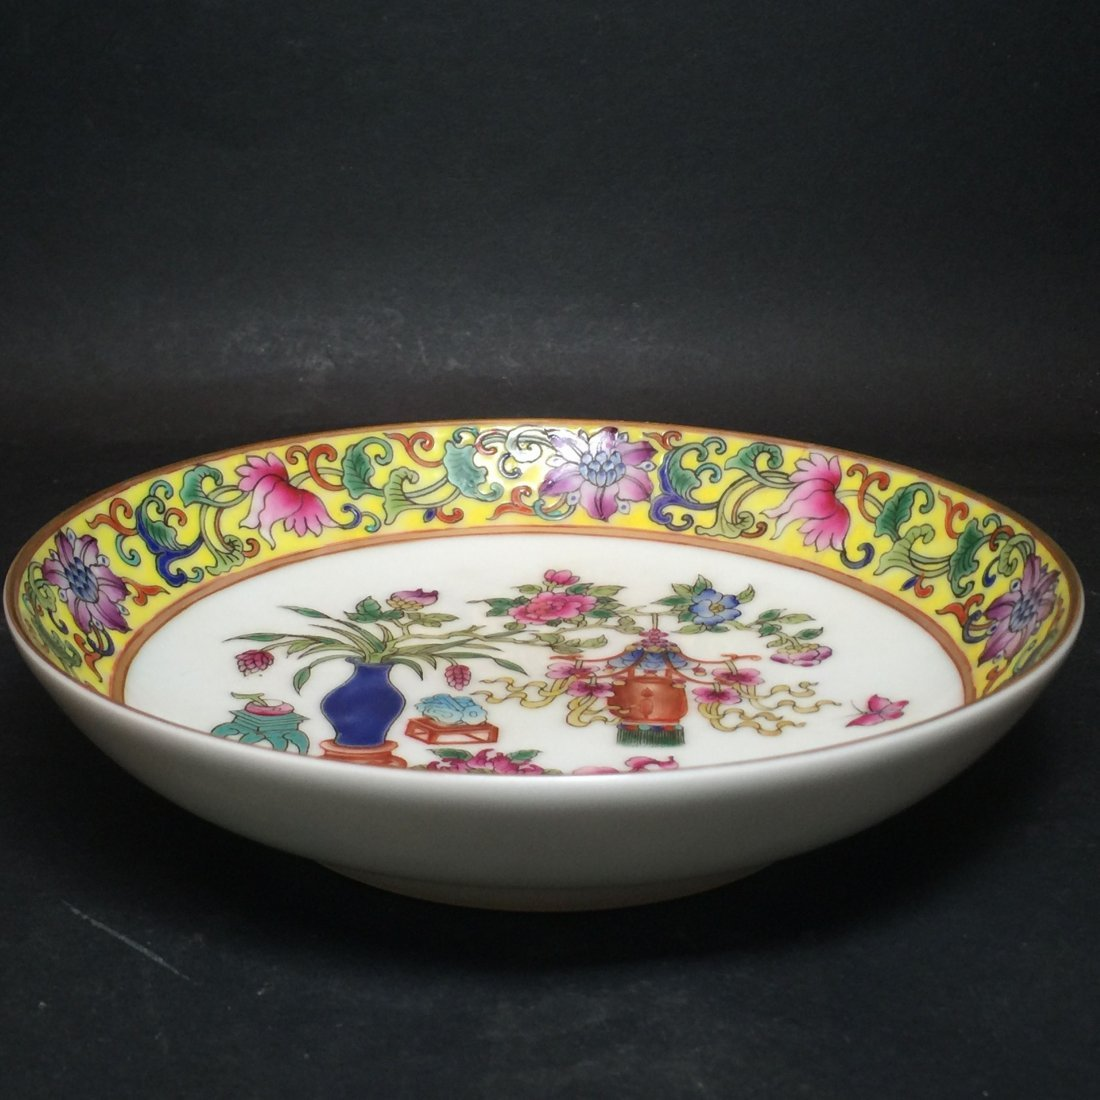 A Flower-blossom Chinese Yellow Framing Plate